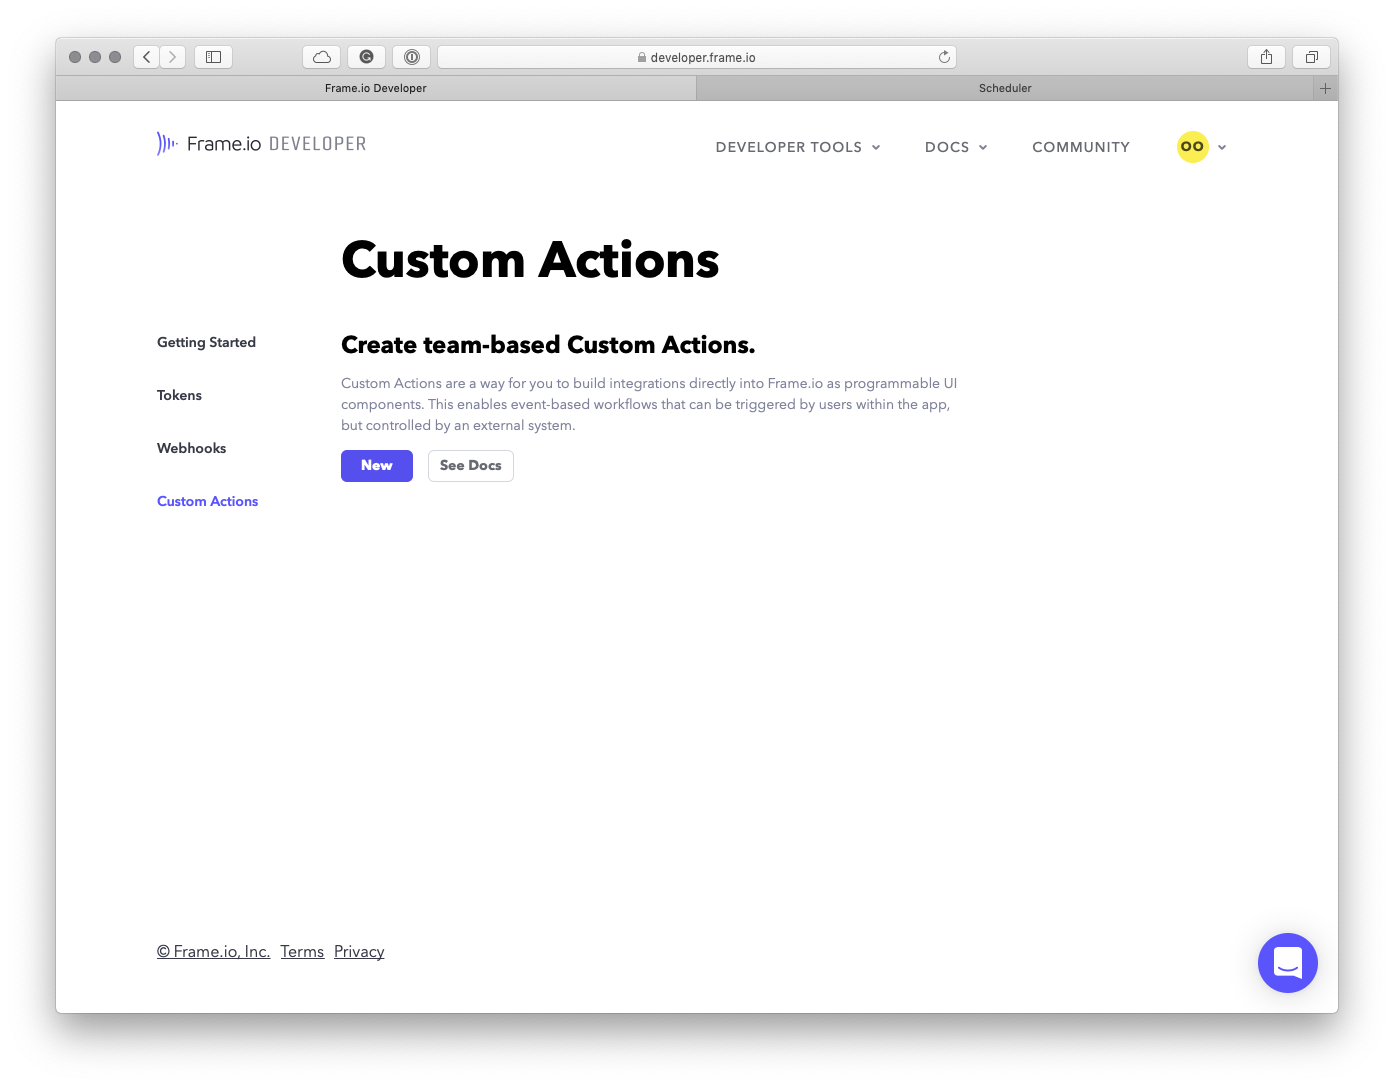 Frame.io Custom Actions page